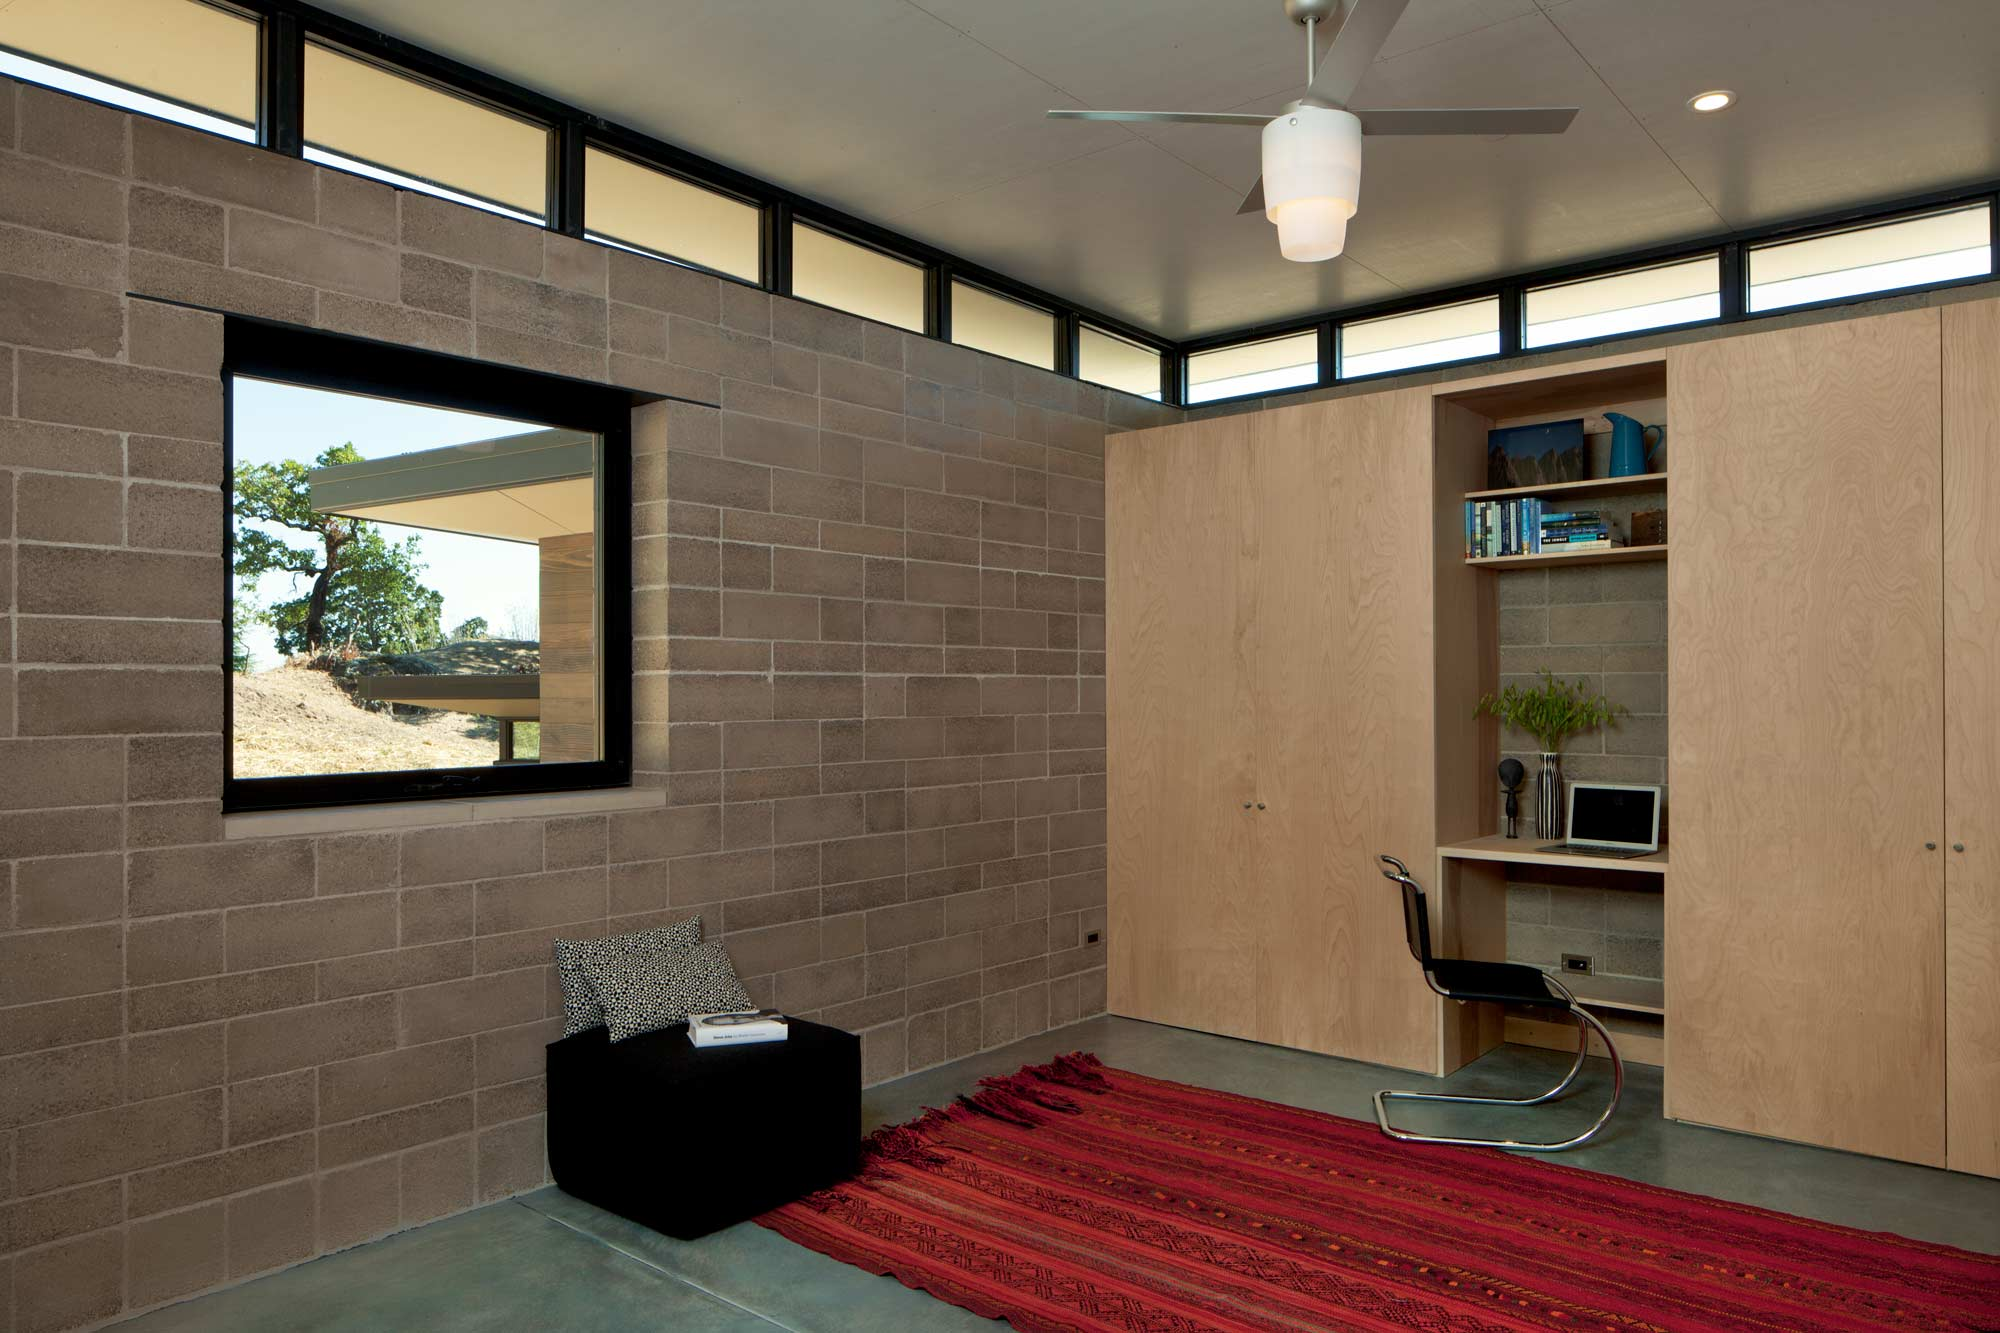 Watershed-Materials-Blog-Watershed-Block-Demonstration-Home-Finished-06.jpg